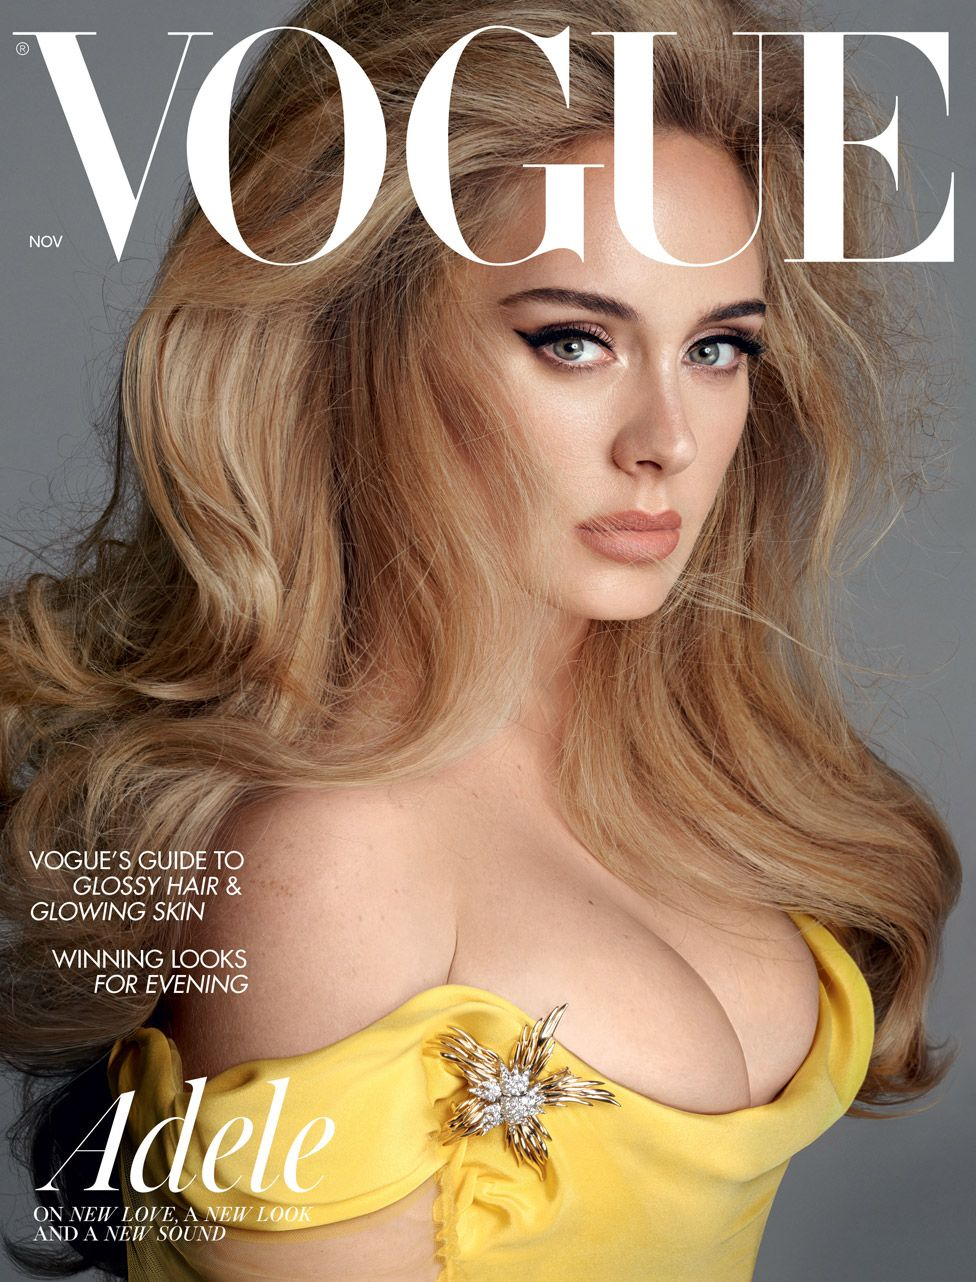 Adele on the cover of Vogue